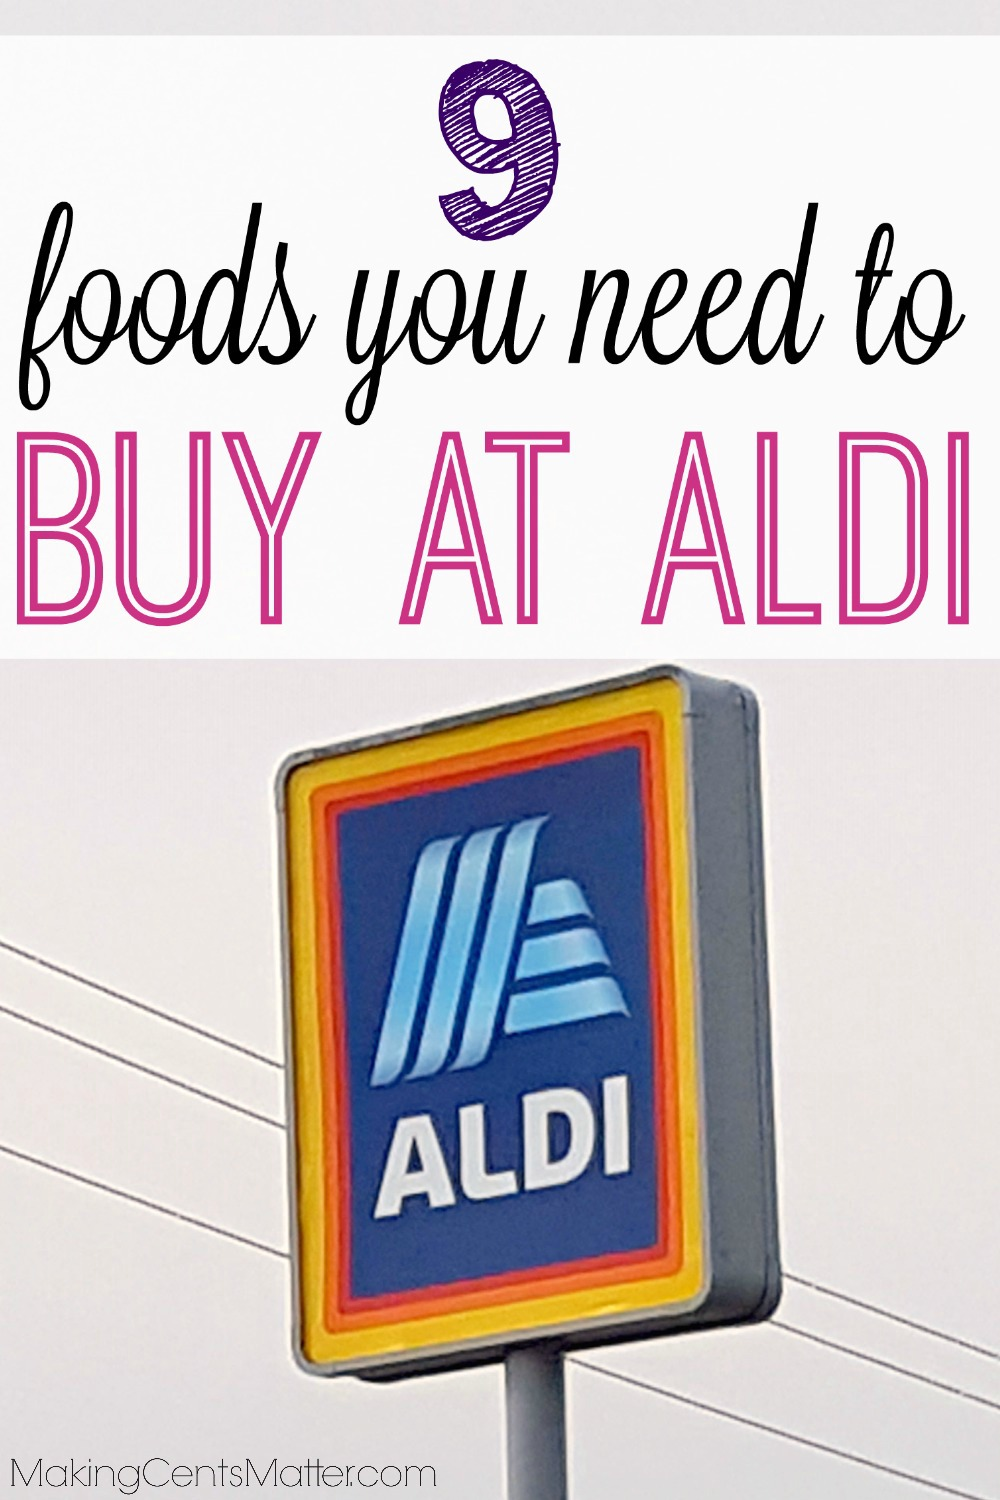 What To Buy At Aldi